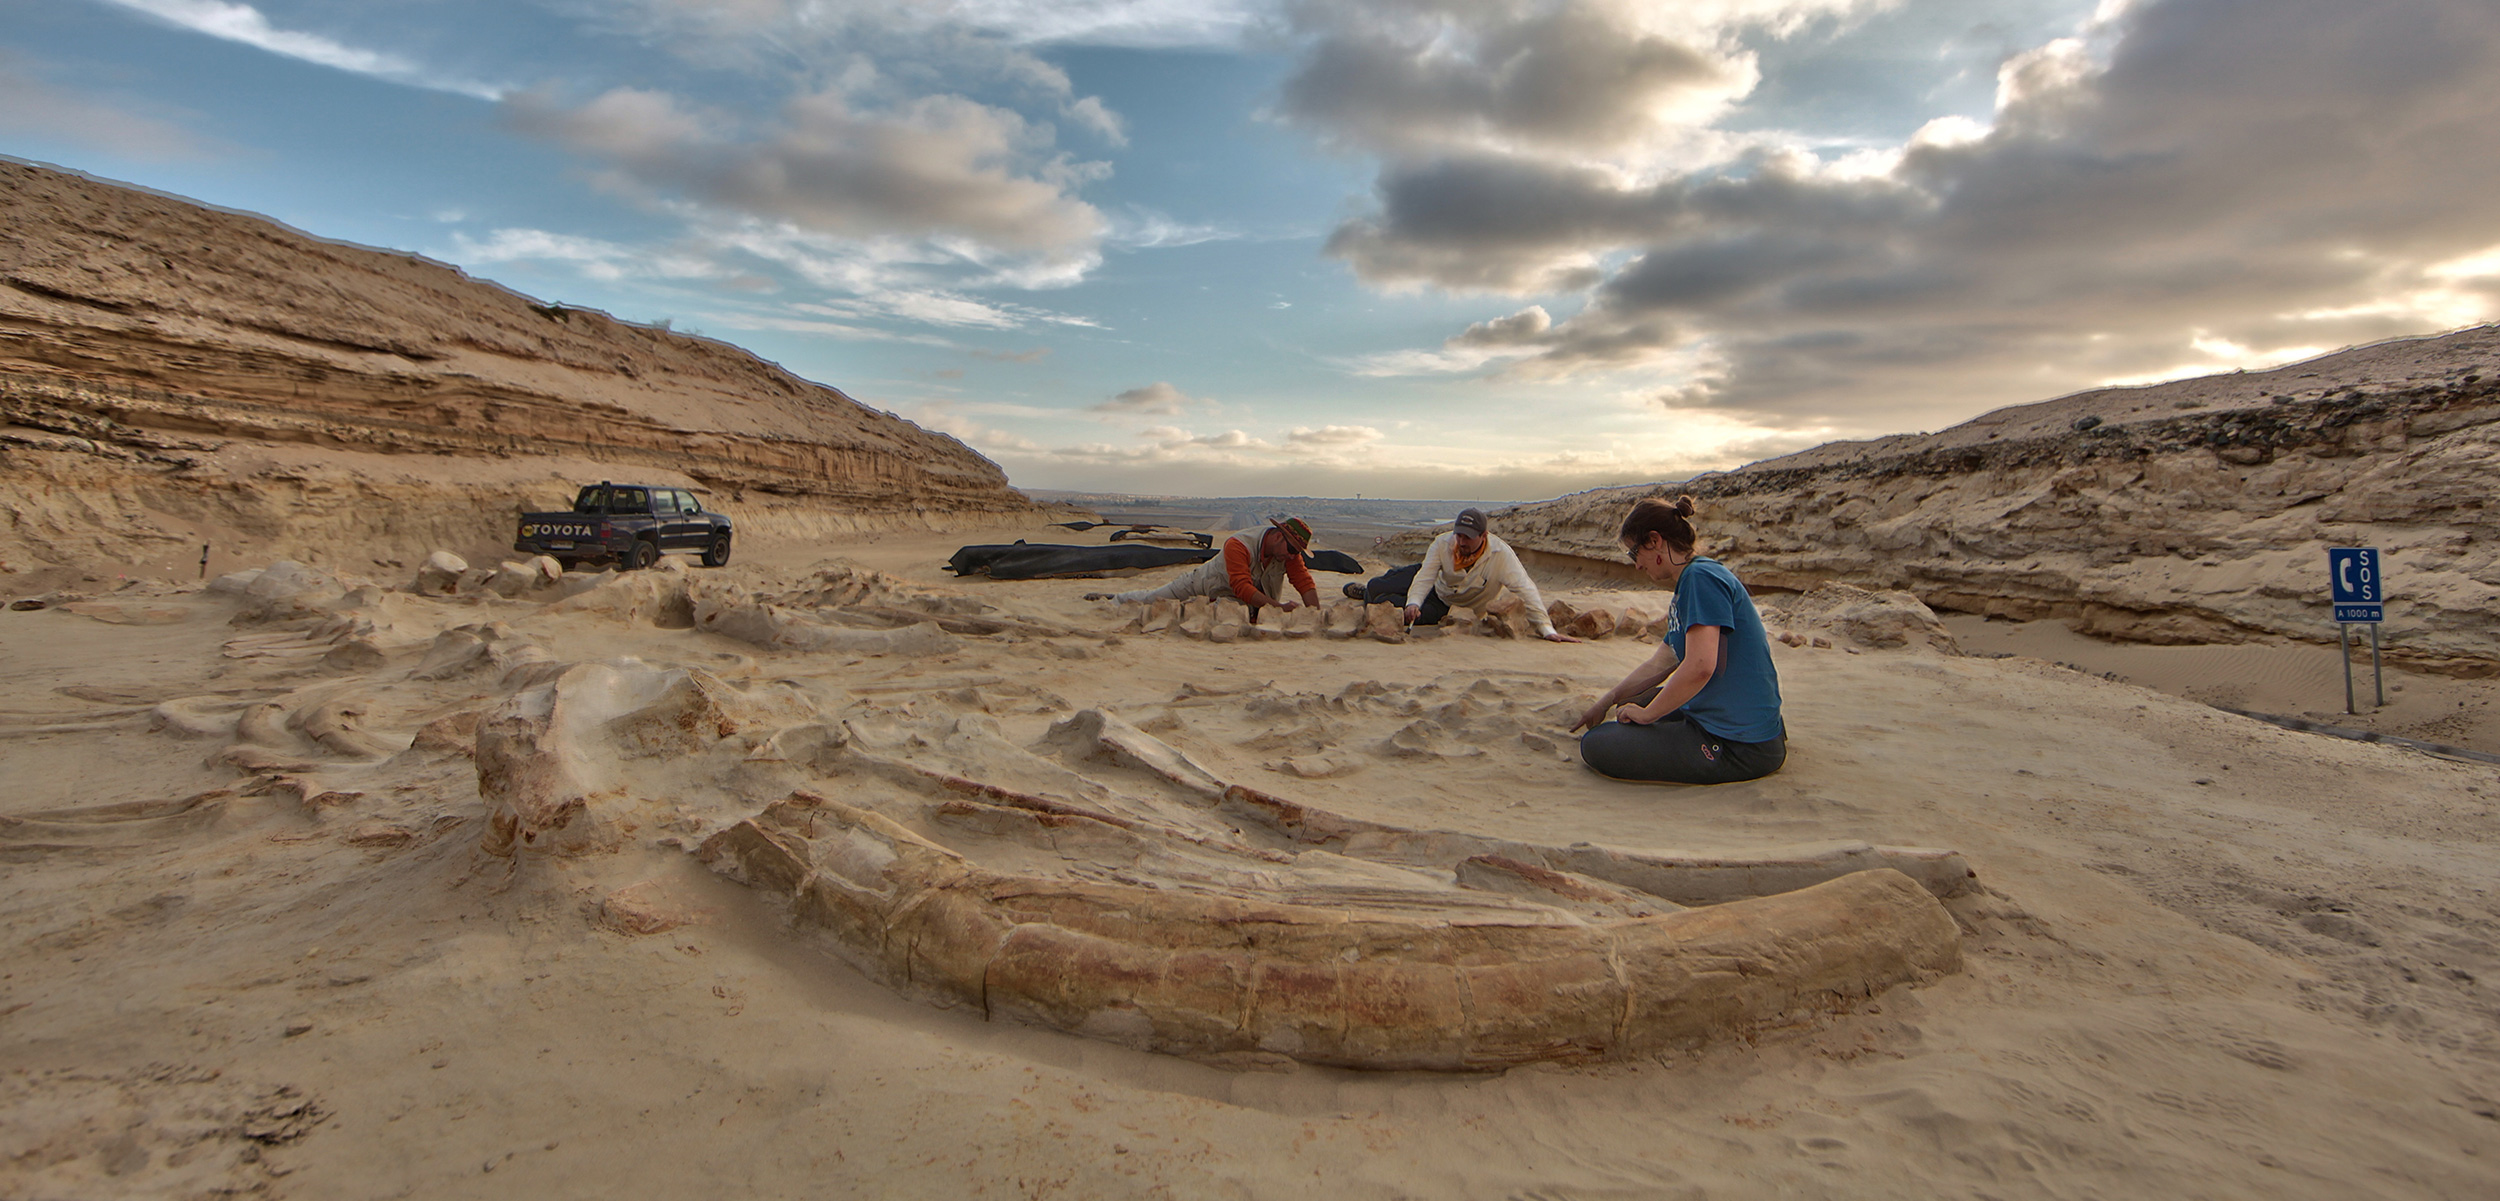 Chilean and American scientists study several fossil whale skeletons at Cerro Ballena (whale hill) in Chile's Atacama Desert in 2011. Photo by Adam Metallo/Smithsonian Institution